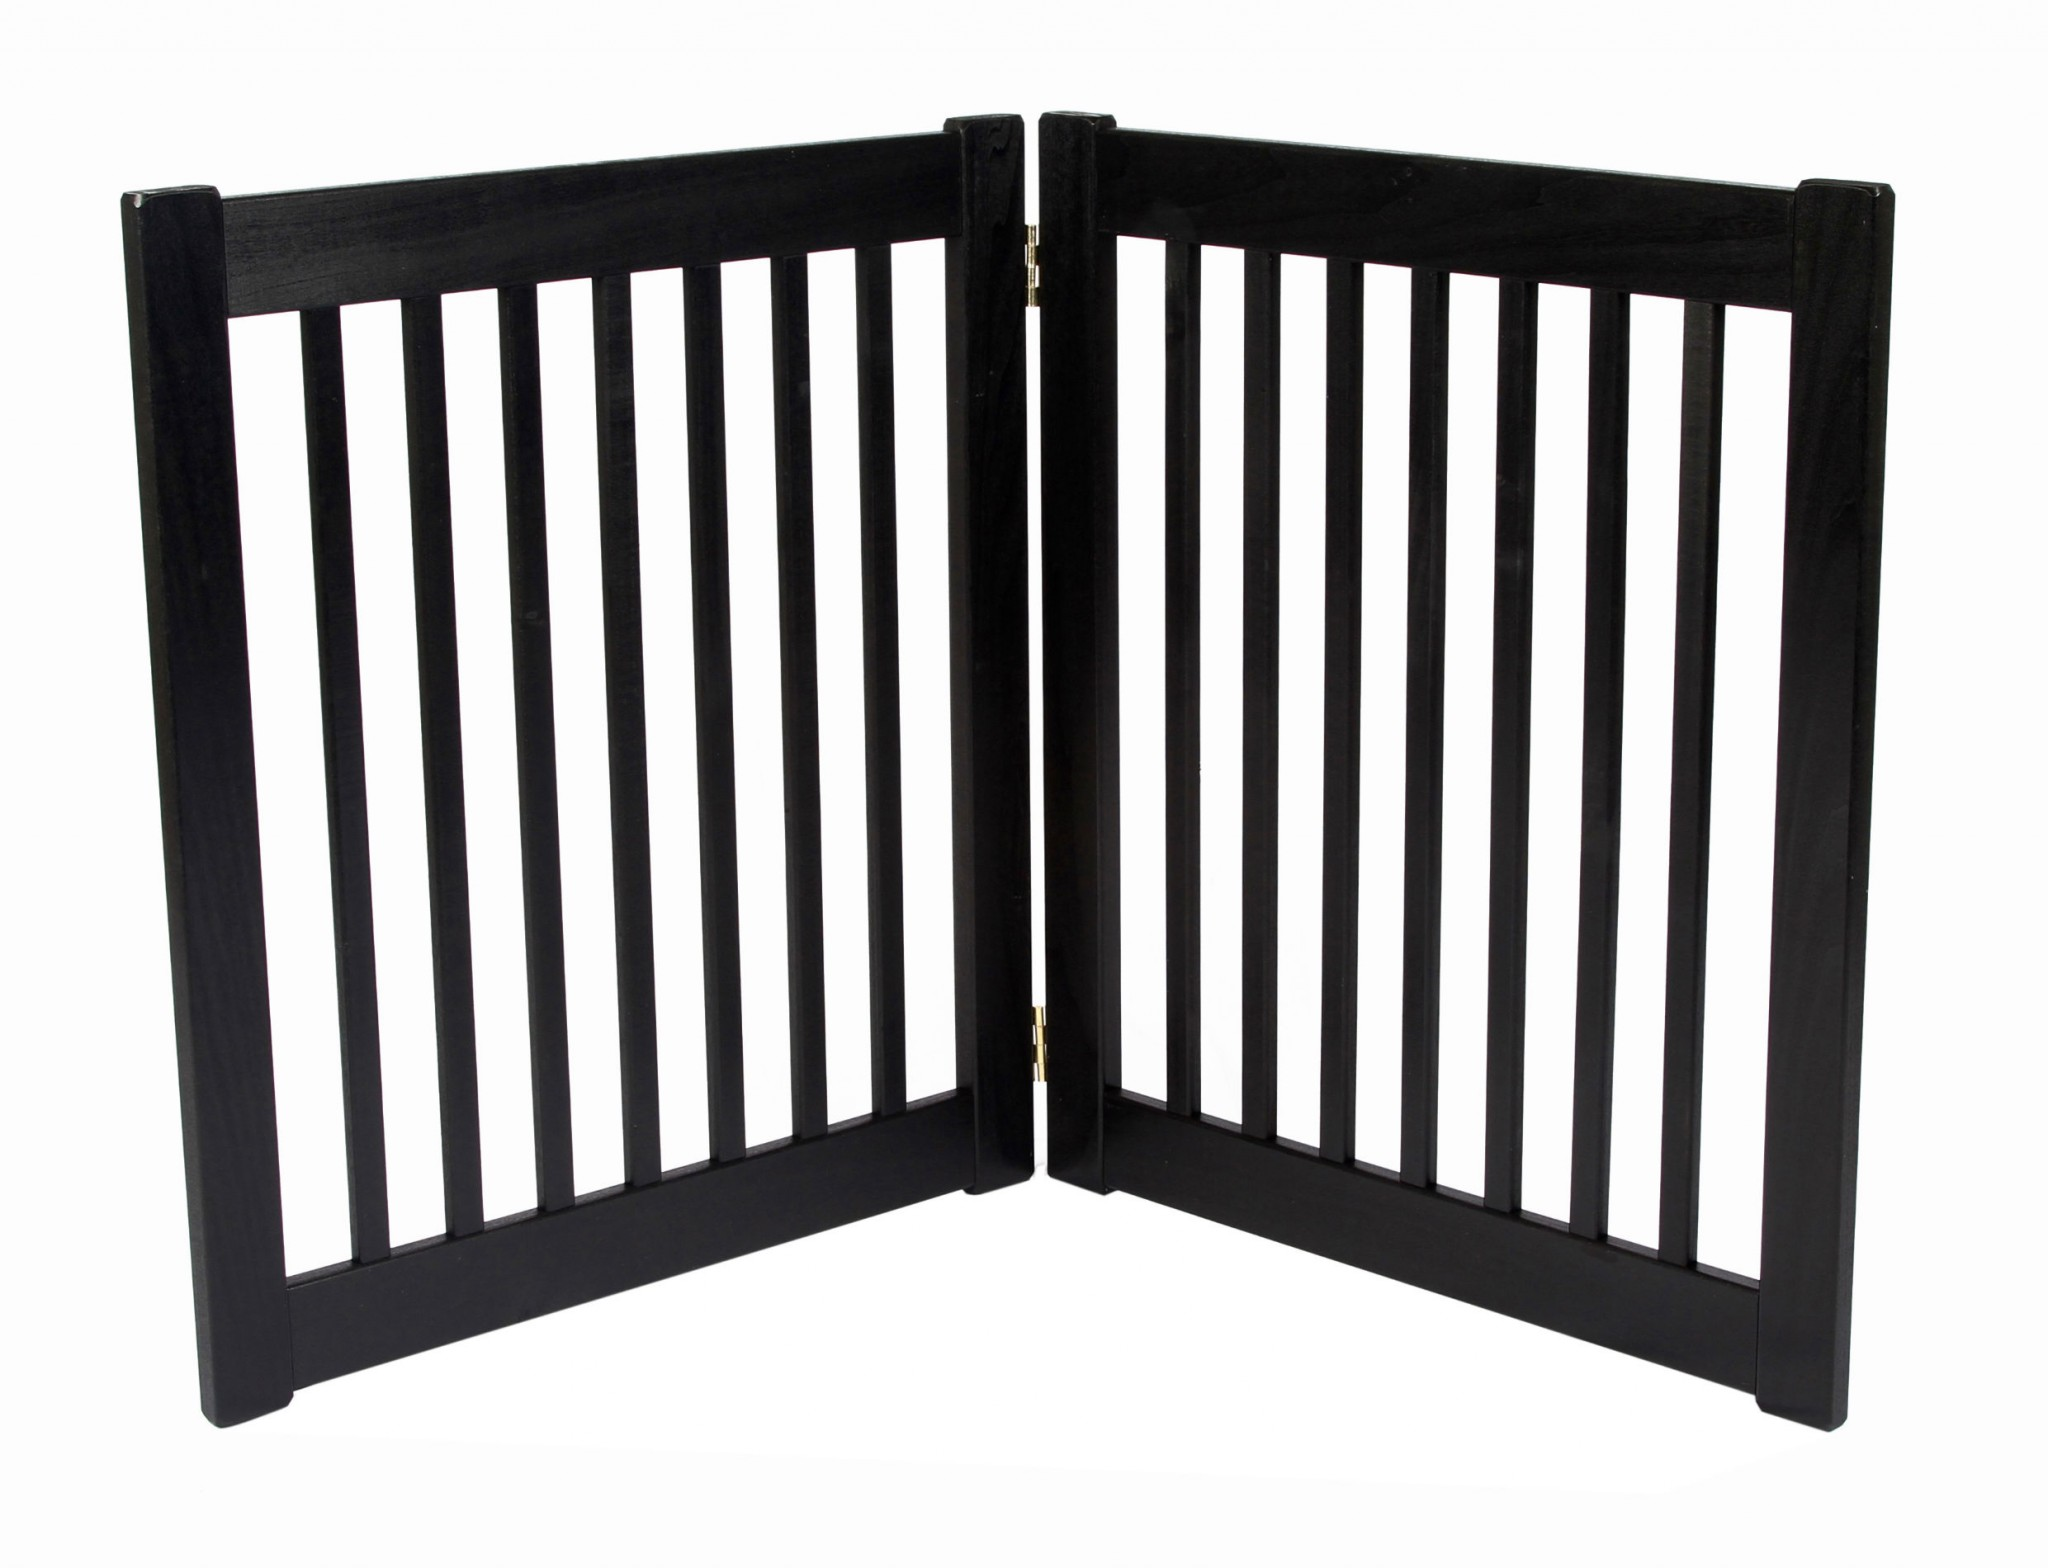 Free Standing 2 Panel 27 Inch EZ Pet Gate Black 42420 Formation